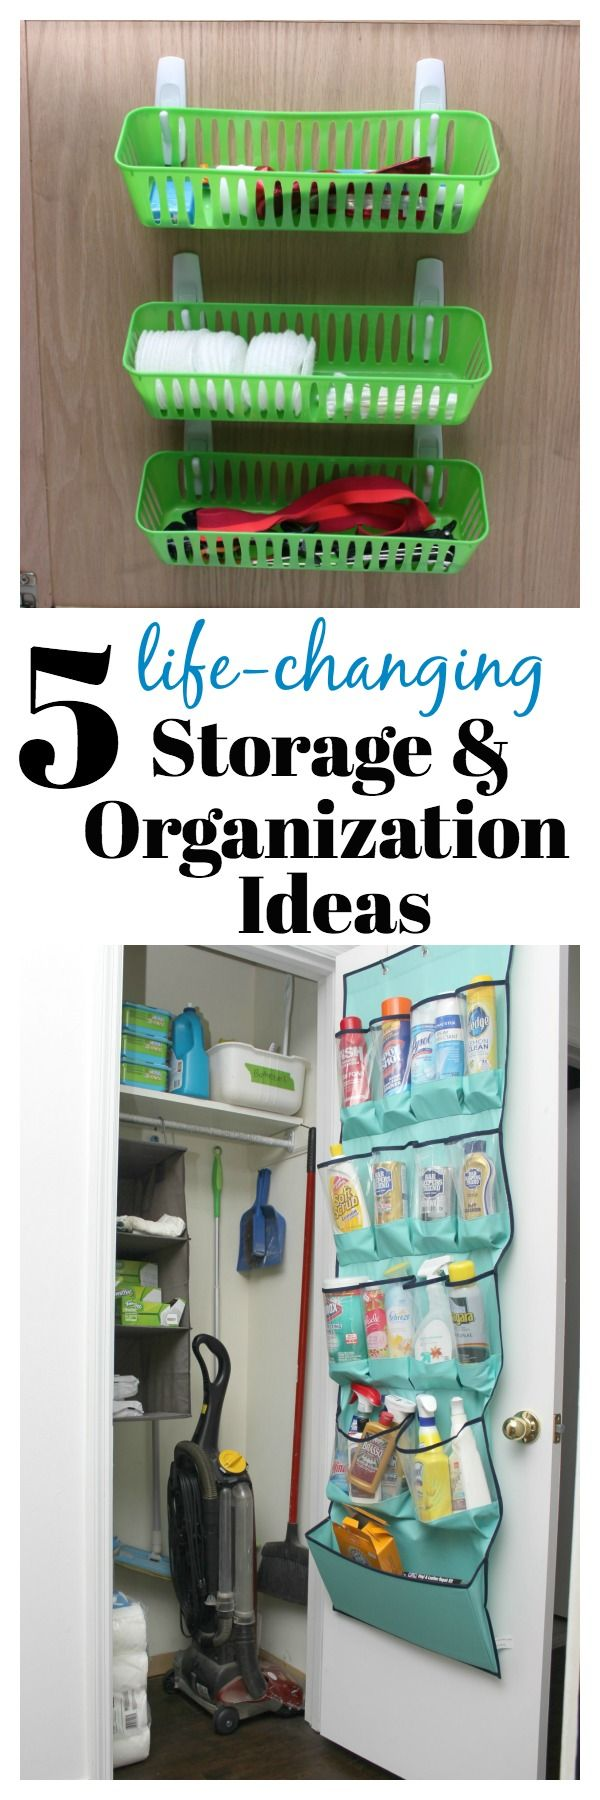 Simple Storage and Organization Ideas for the Home | Storage Ideas | Storage Solutions | Organization Ideas for Home Clutter via @rainonatinroof